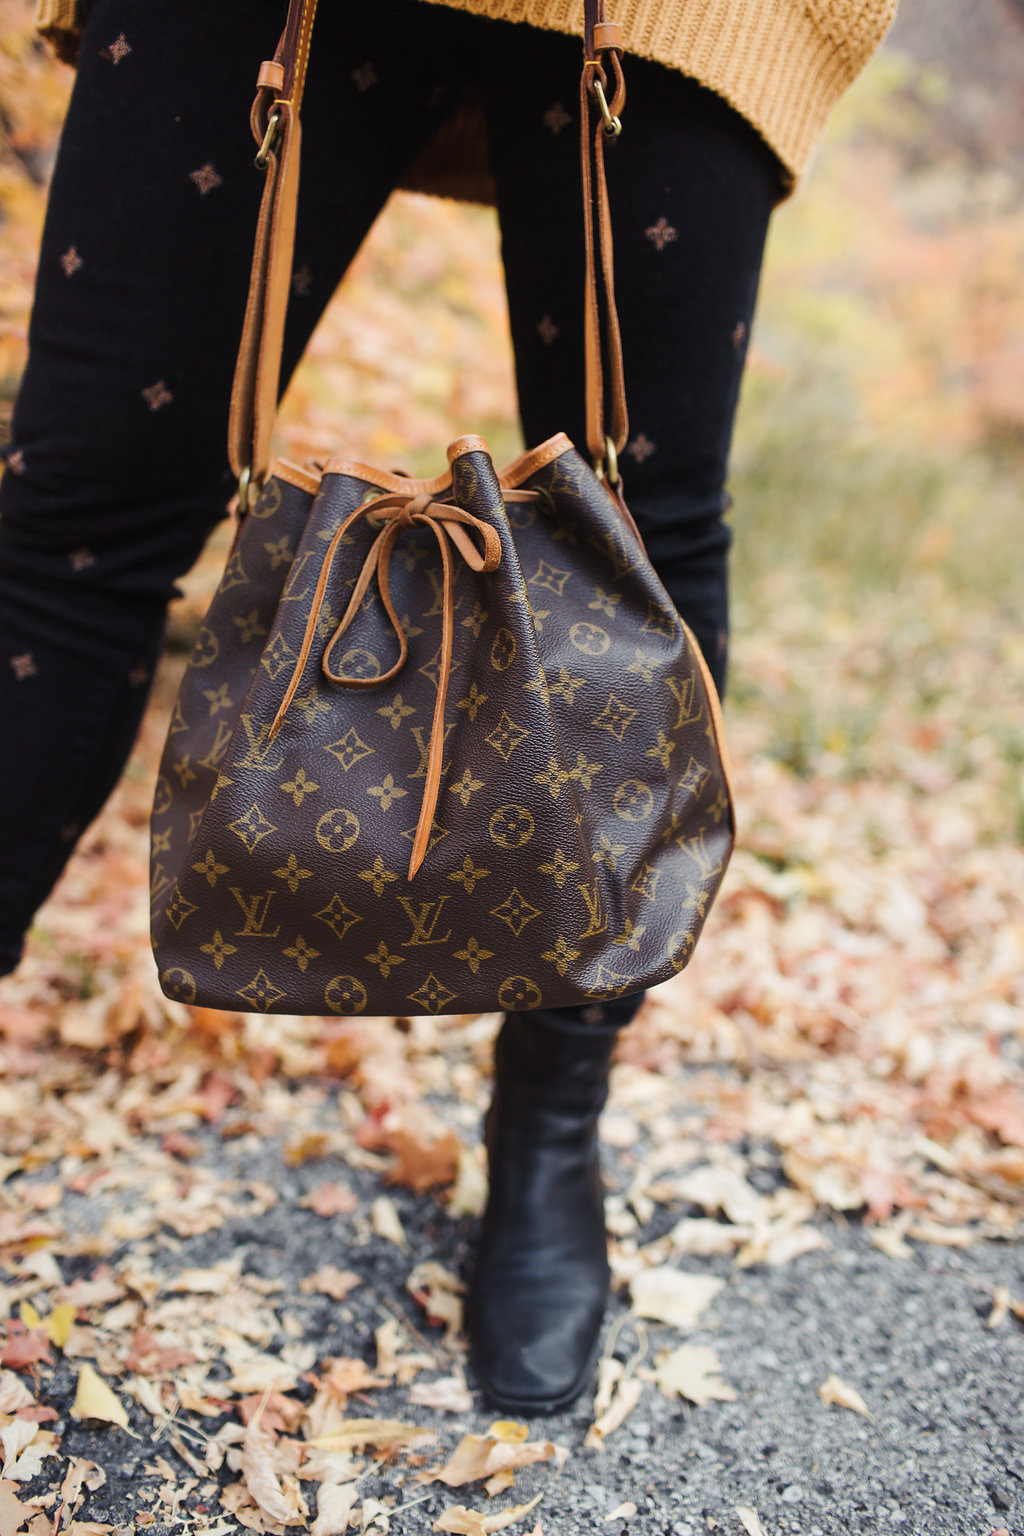 51b4d7bdbce9 ... and would love to spread the love with all of my fans + followers. The  bag we re giving away is a 100% genuine Louis Vuitton Petit Noe